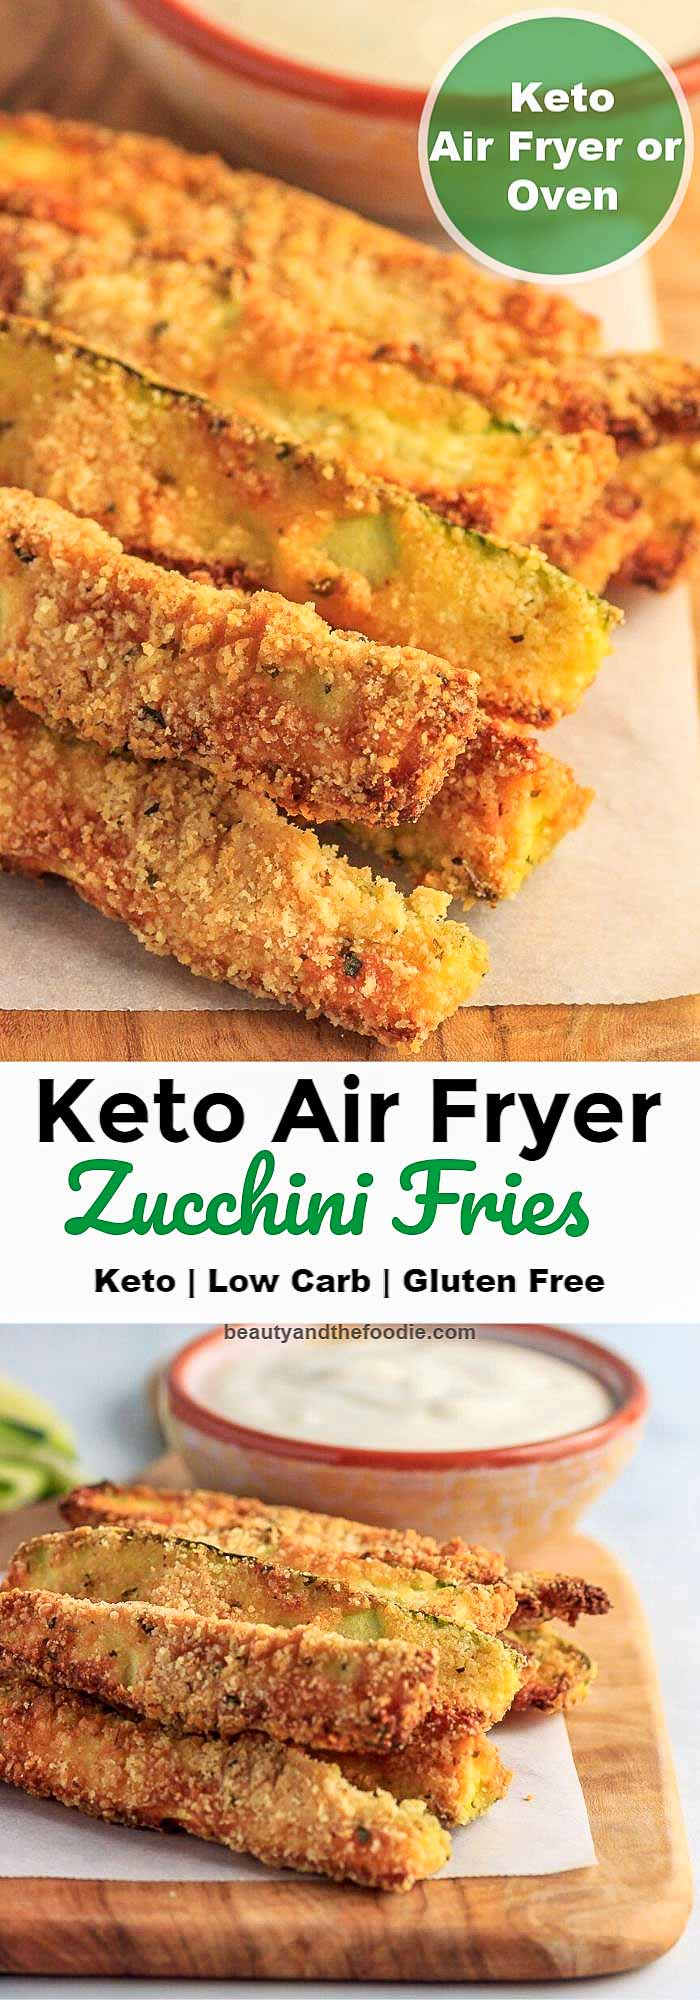 Keto Low Carb Air Fryer Zucchini Fries with oven directions.